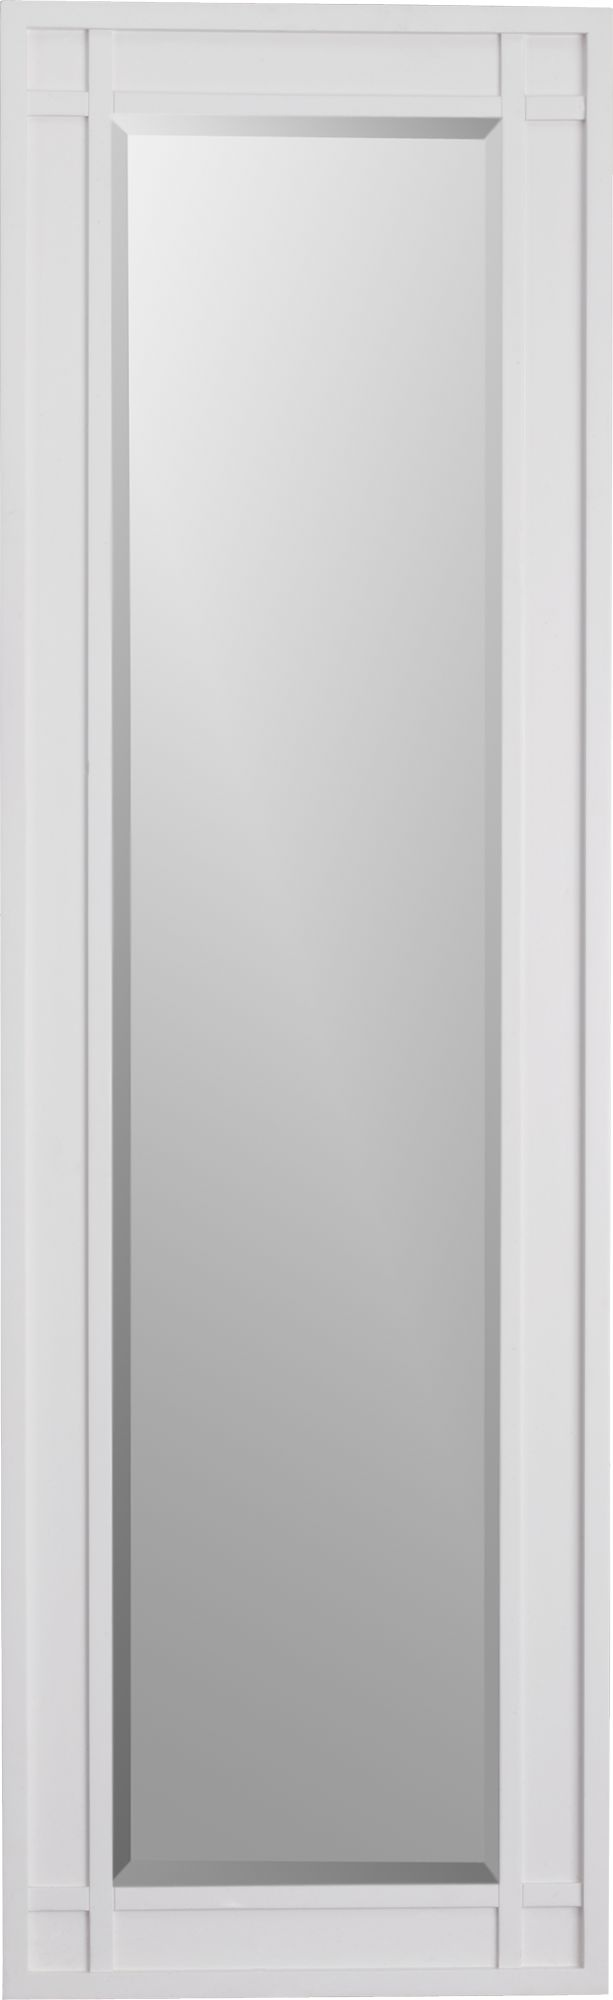 Brighton White Floor Mirror in Mirrors | Crate and Barrel